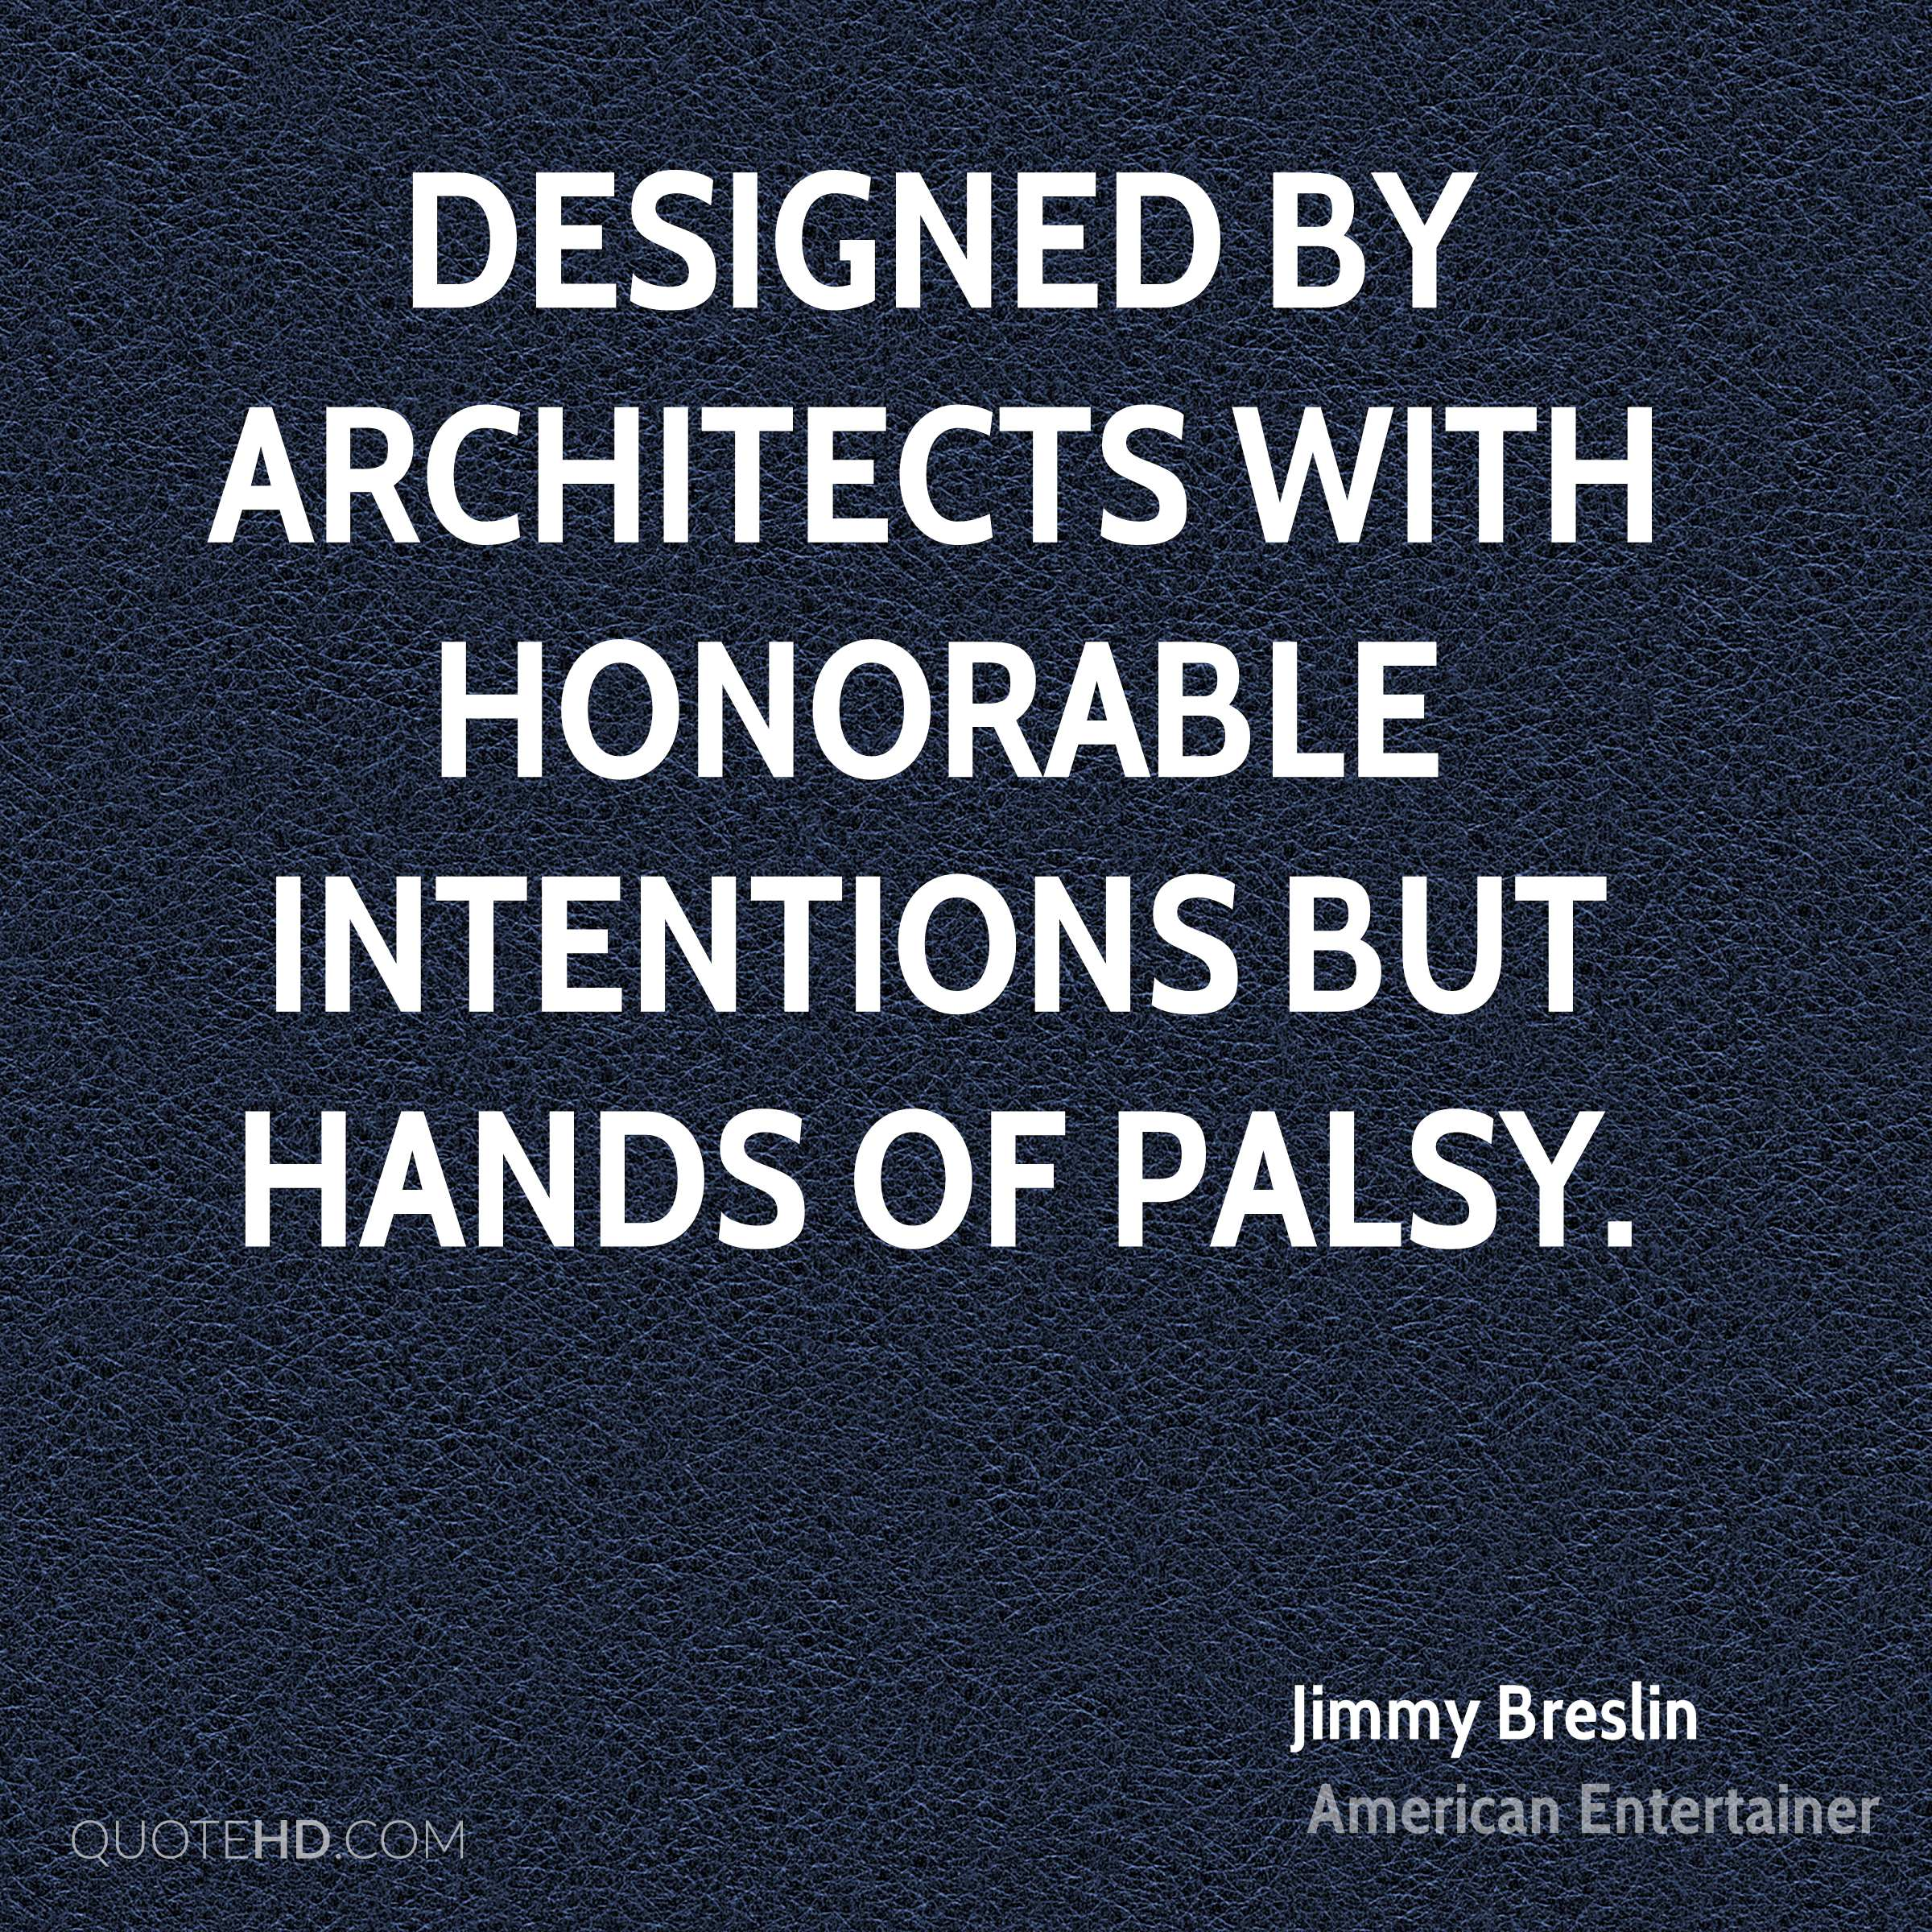 Designed by architects with honorable intentions but hands of palsy.